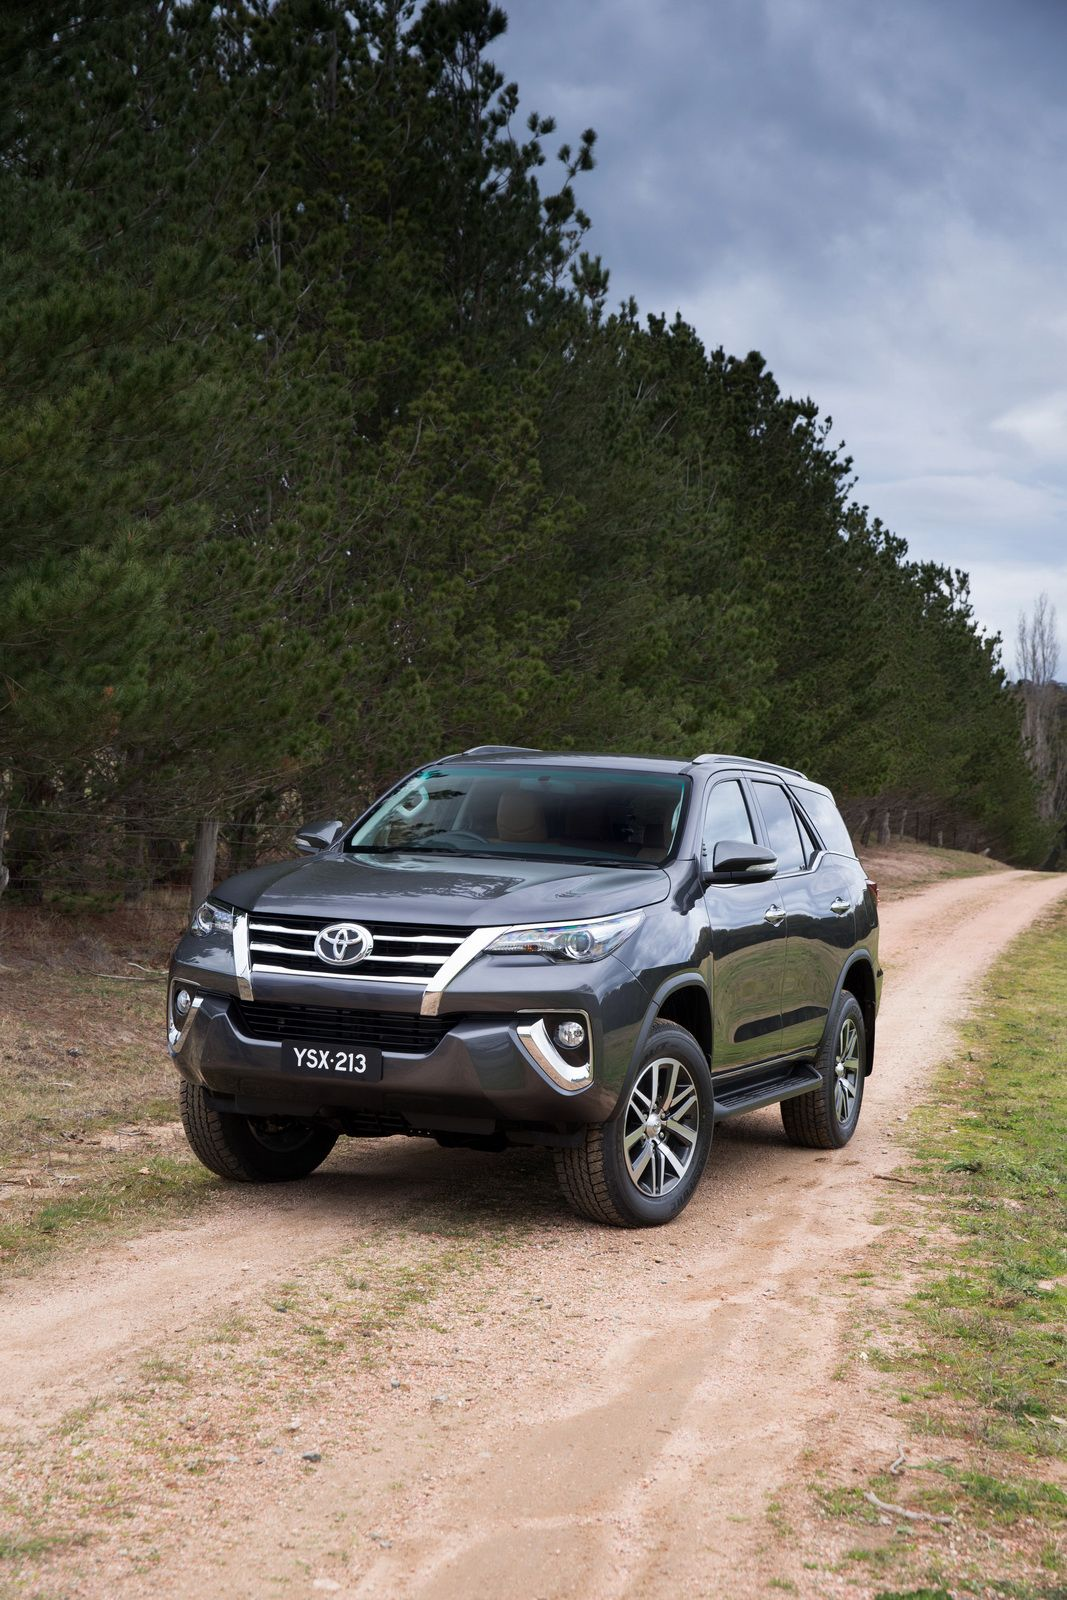 2016 Toyota Fortuner This Is Finally It [w/Video] Bikes